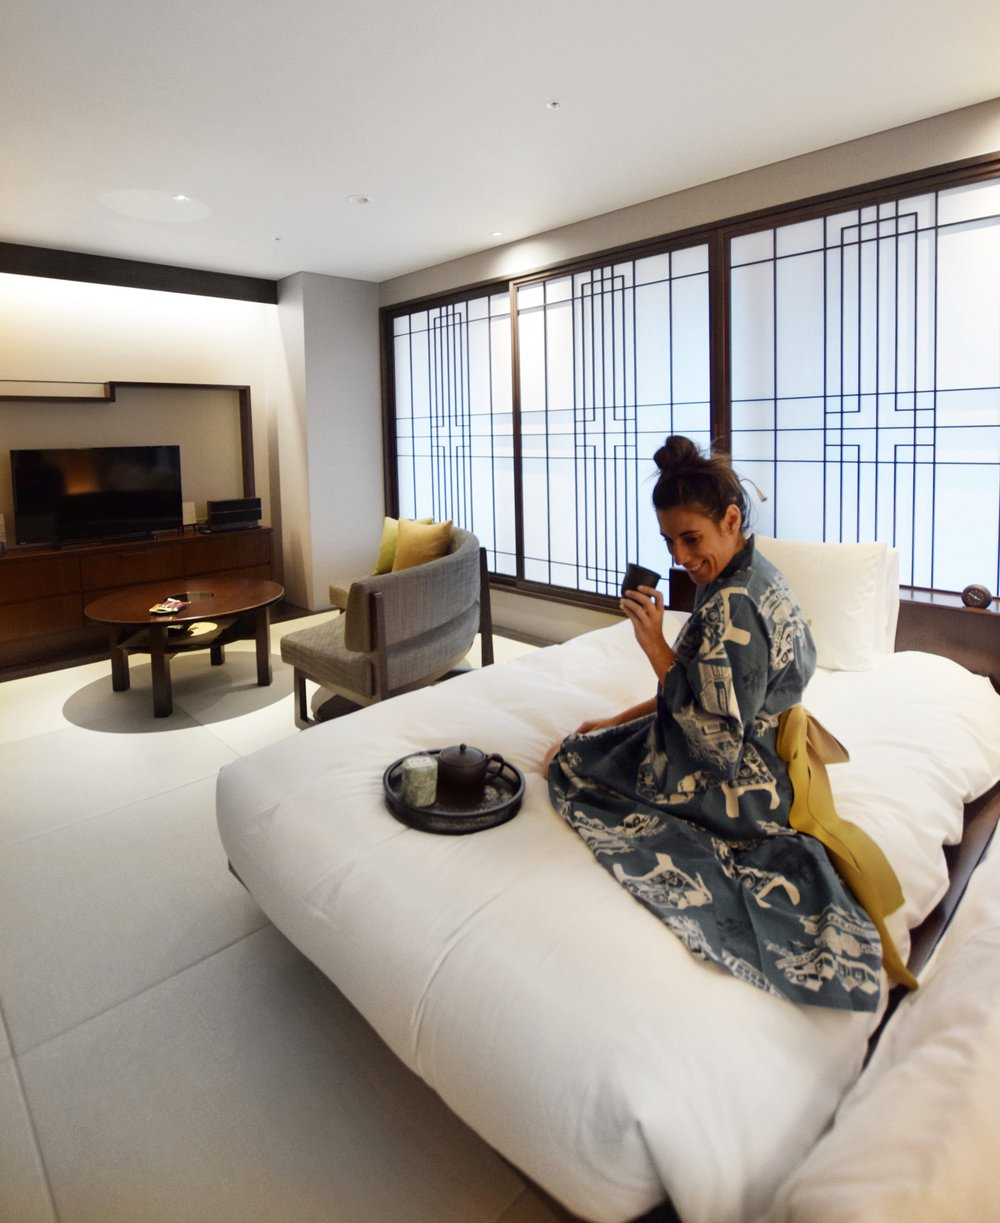 Hotel Ryumeikan Ochanomizu Honten - Great location with amazing rooms. Also a complimentary Yukata!Full Review Here.